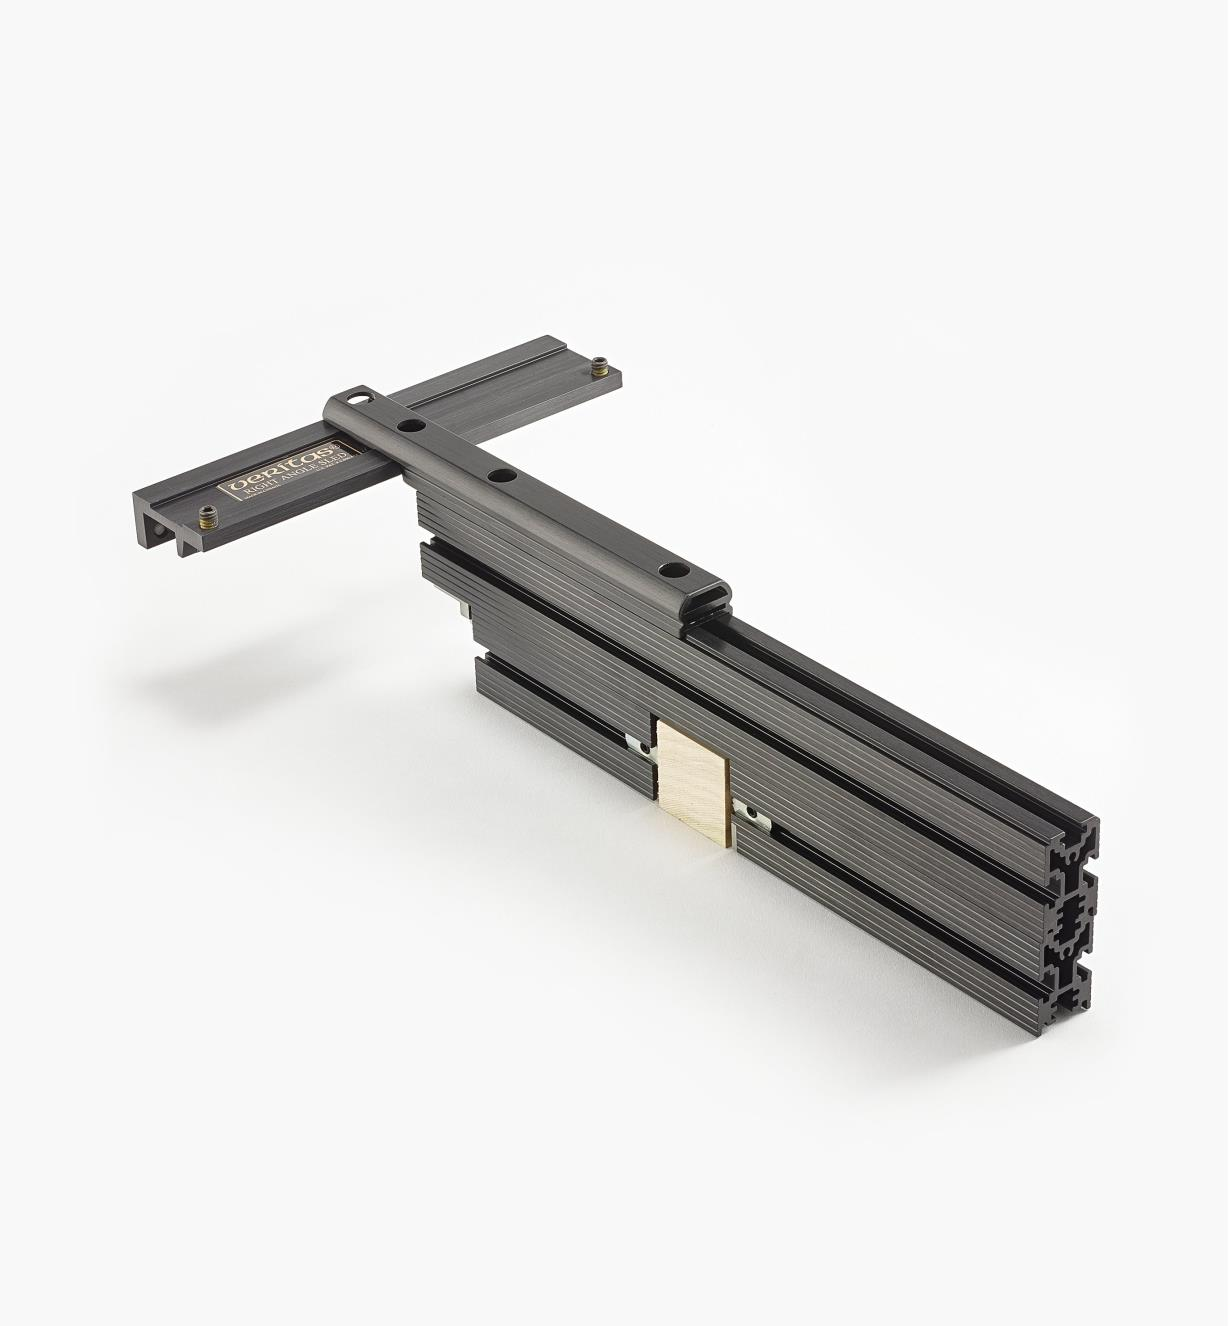 05J2401 - Veritas Right-Angle Sled